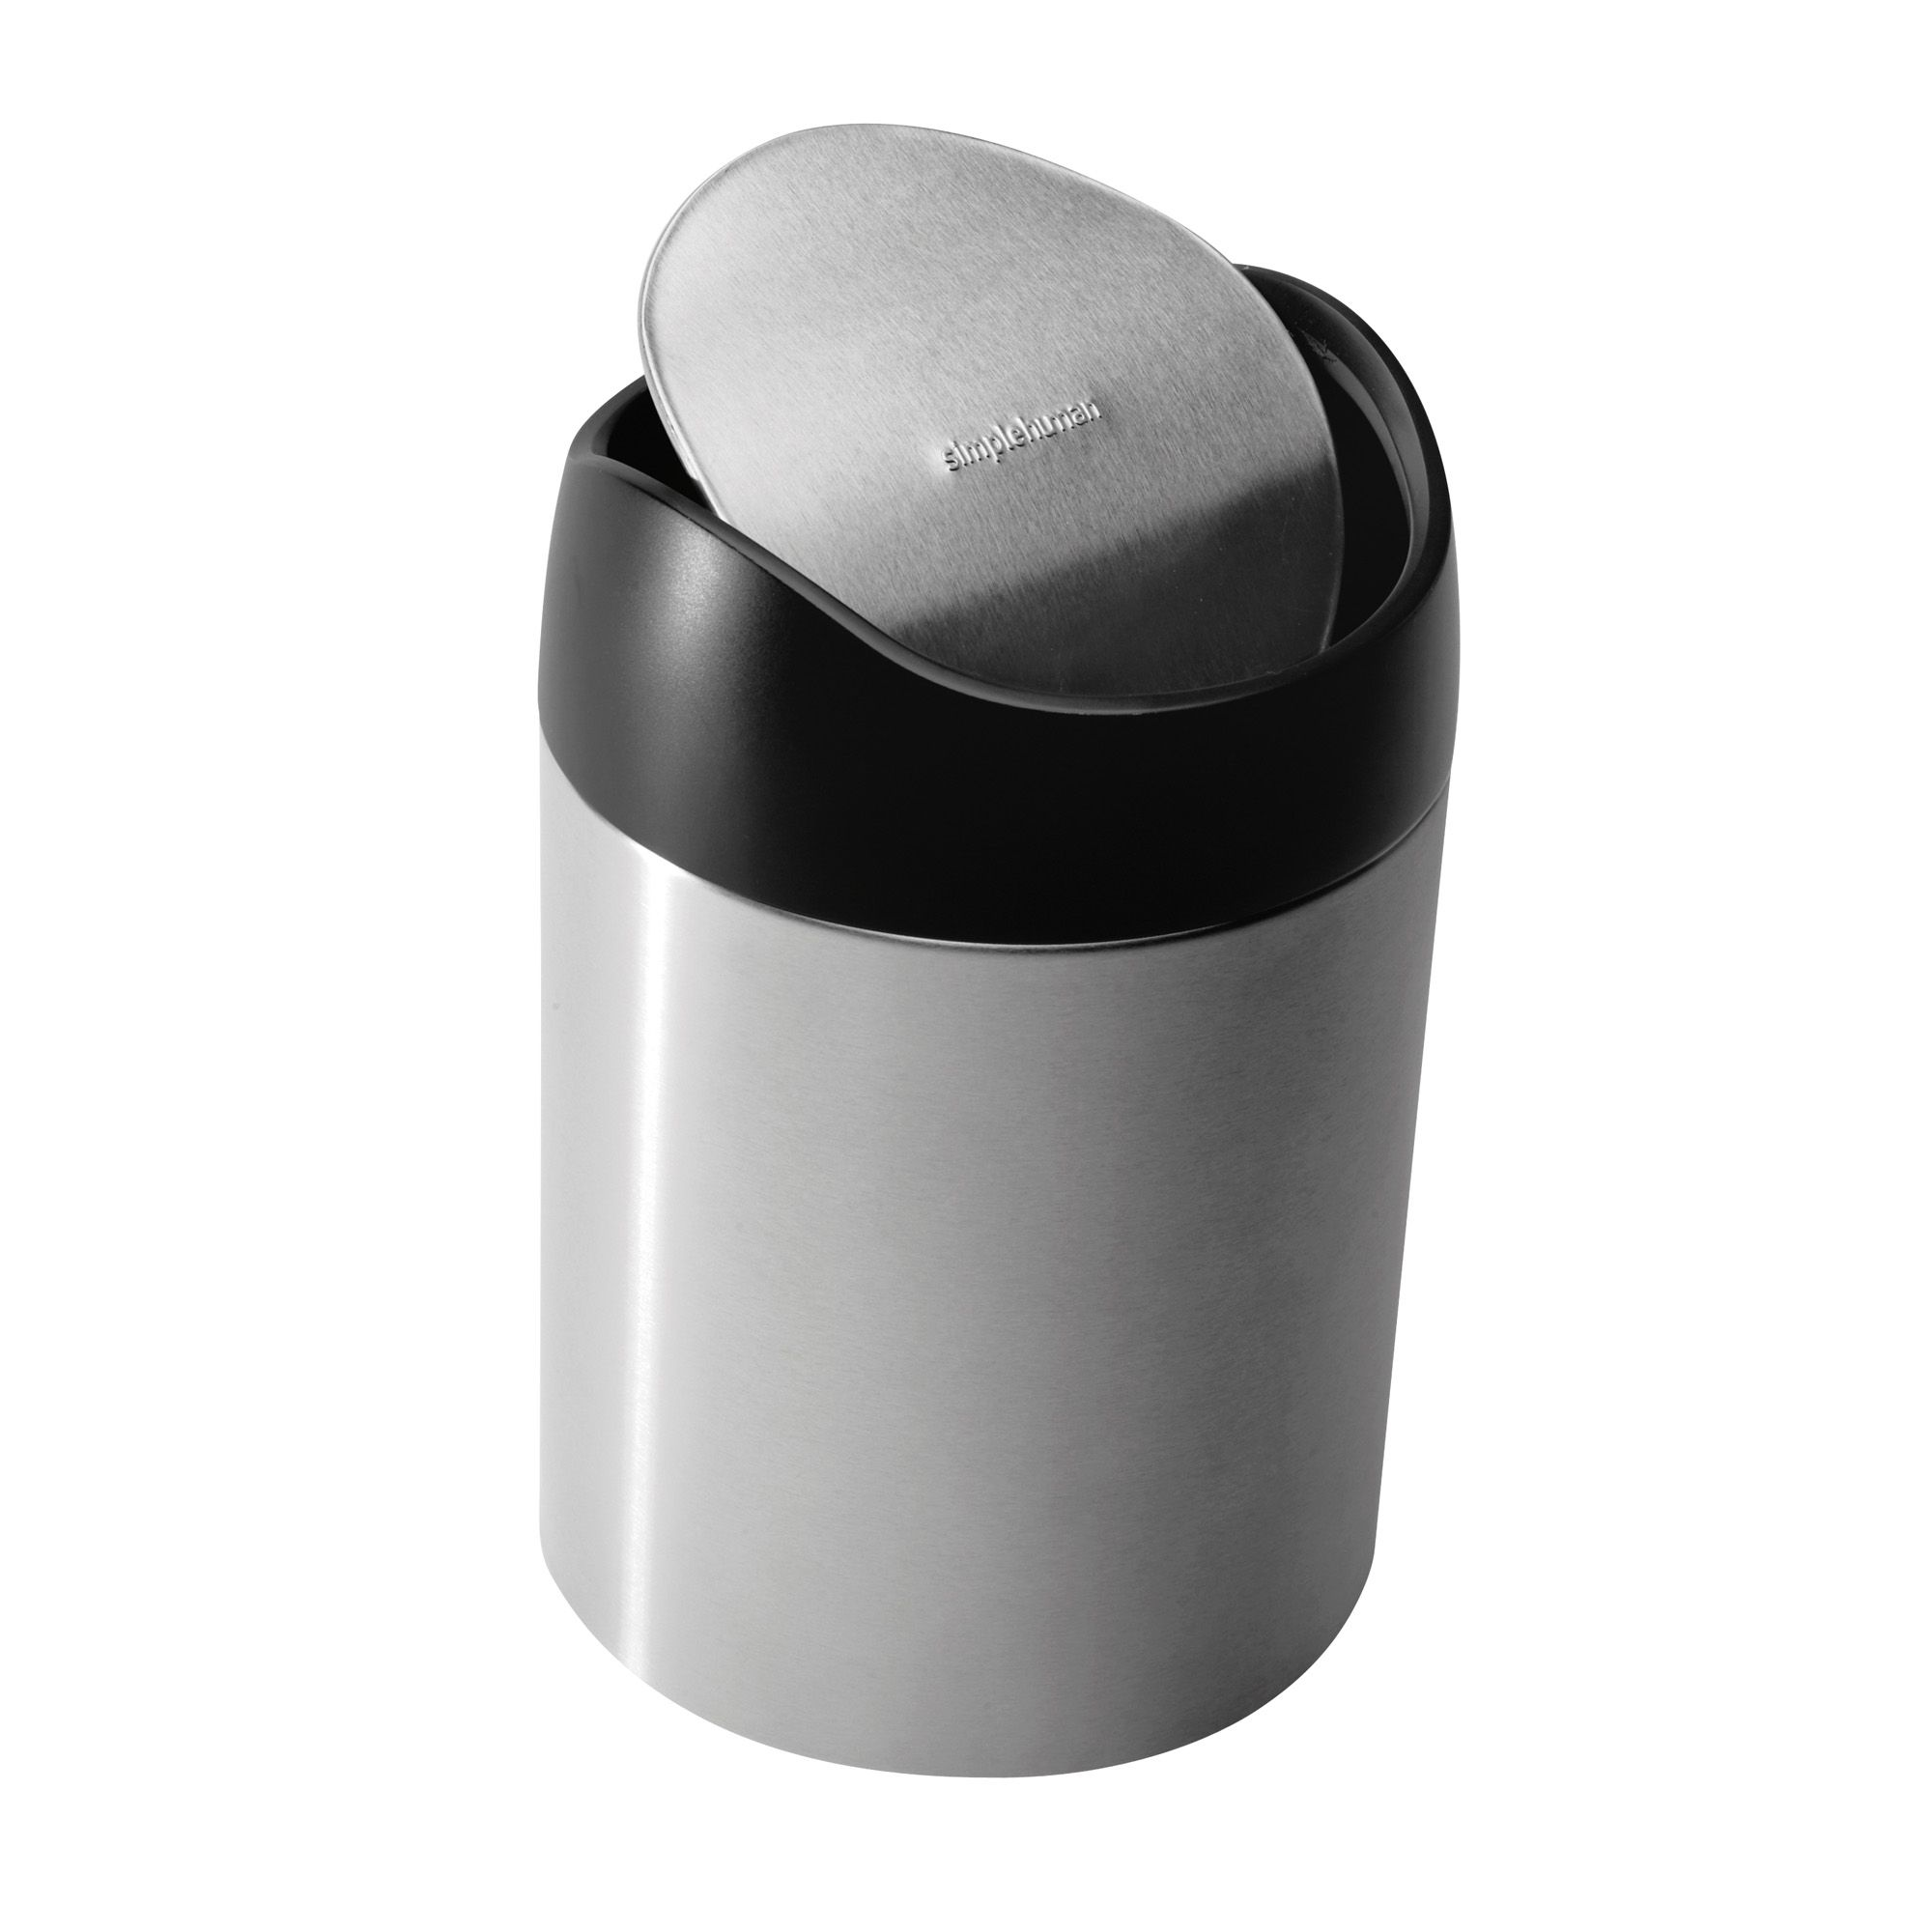 Simplehuman Stainless Steel Round Table Top Bin